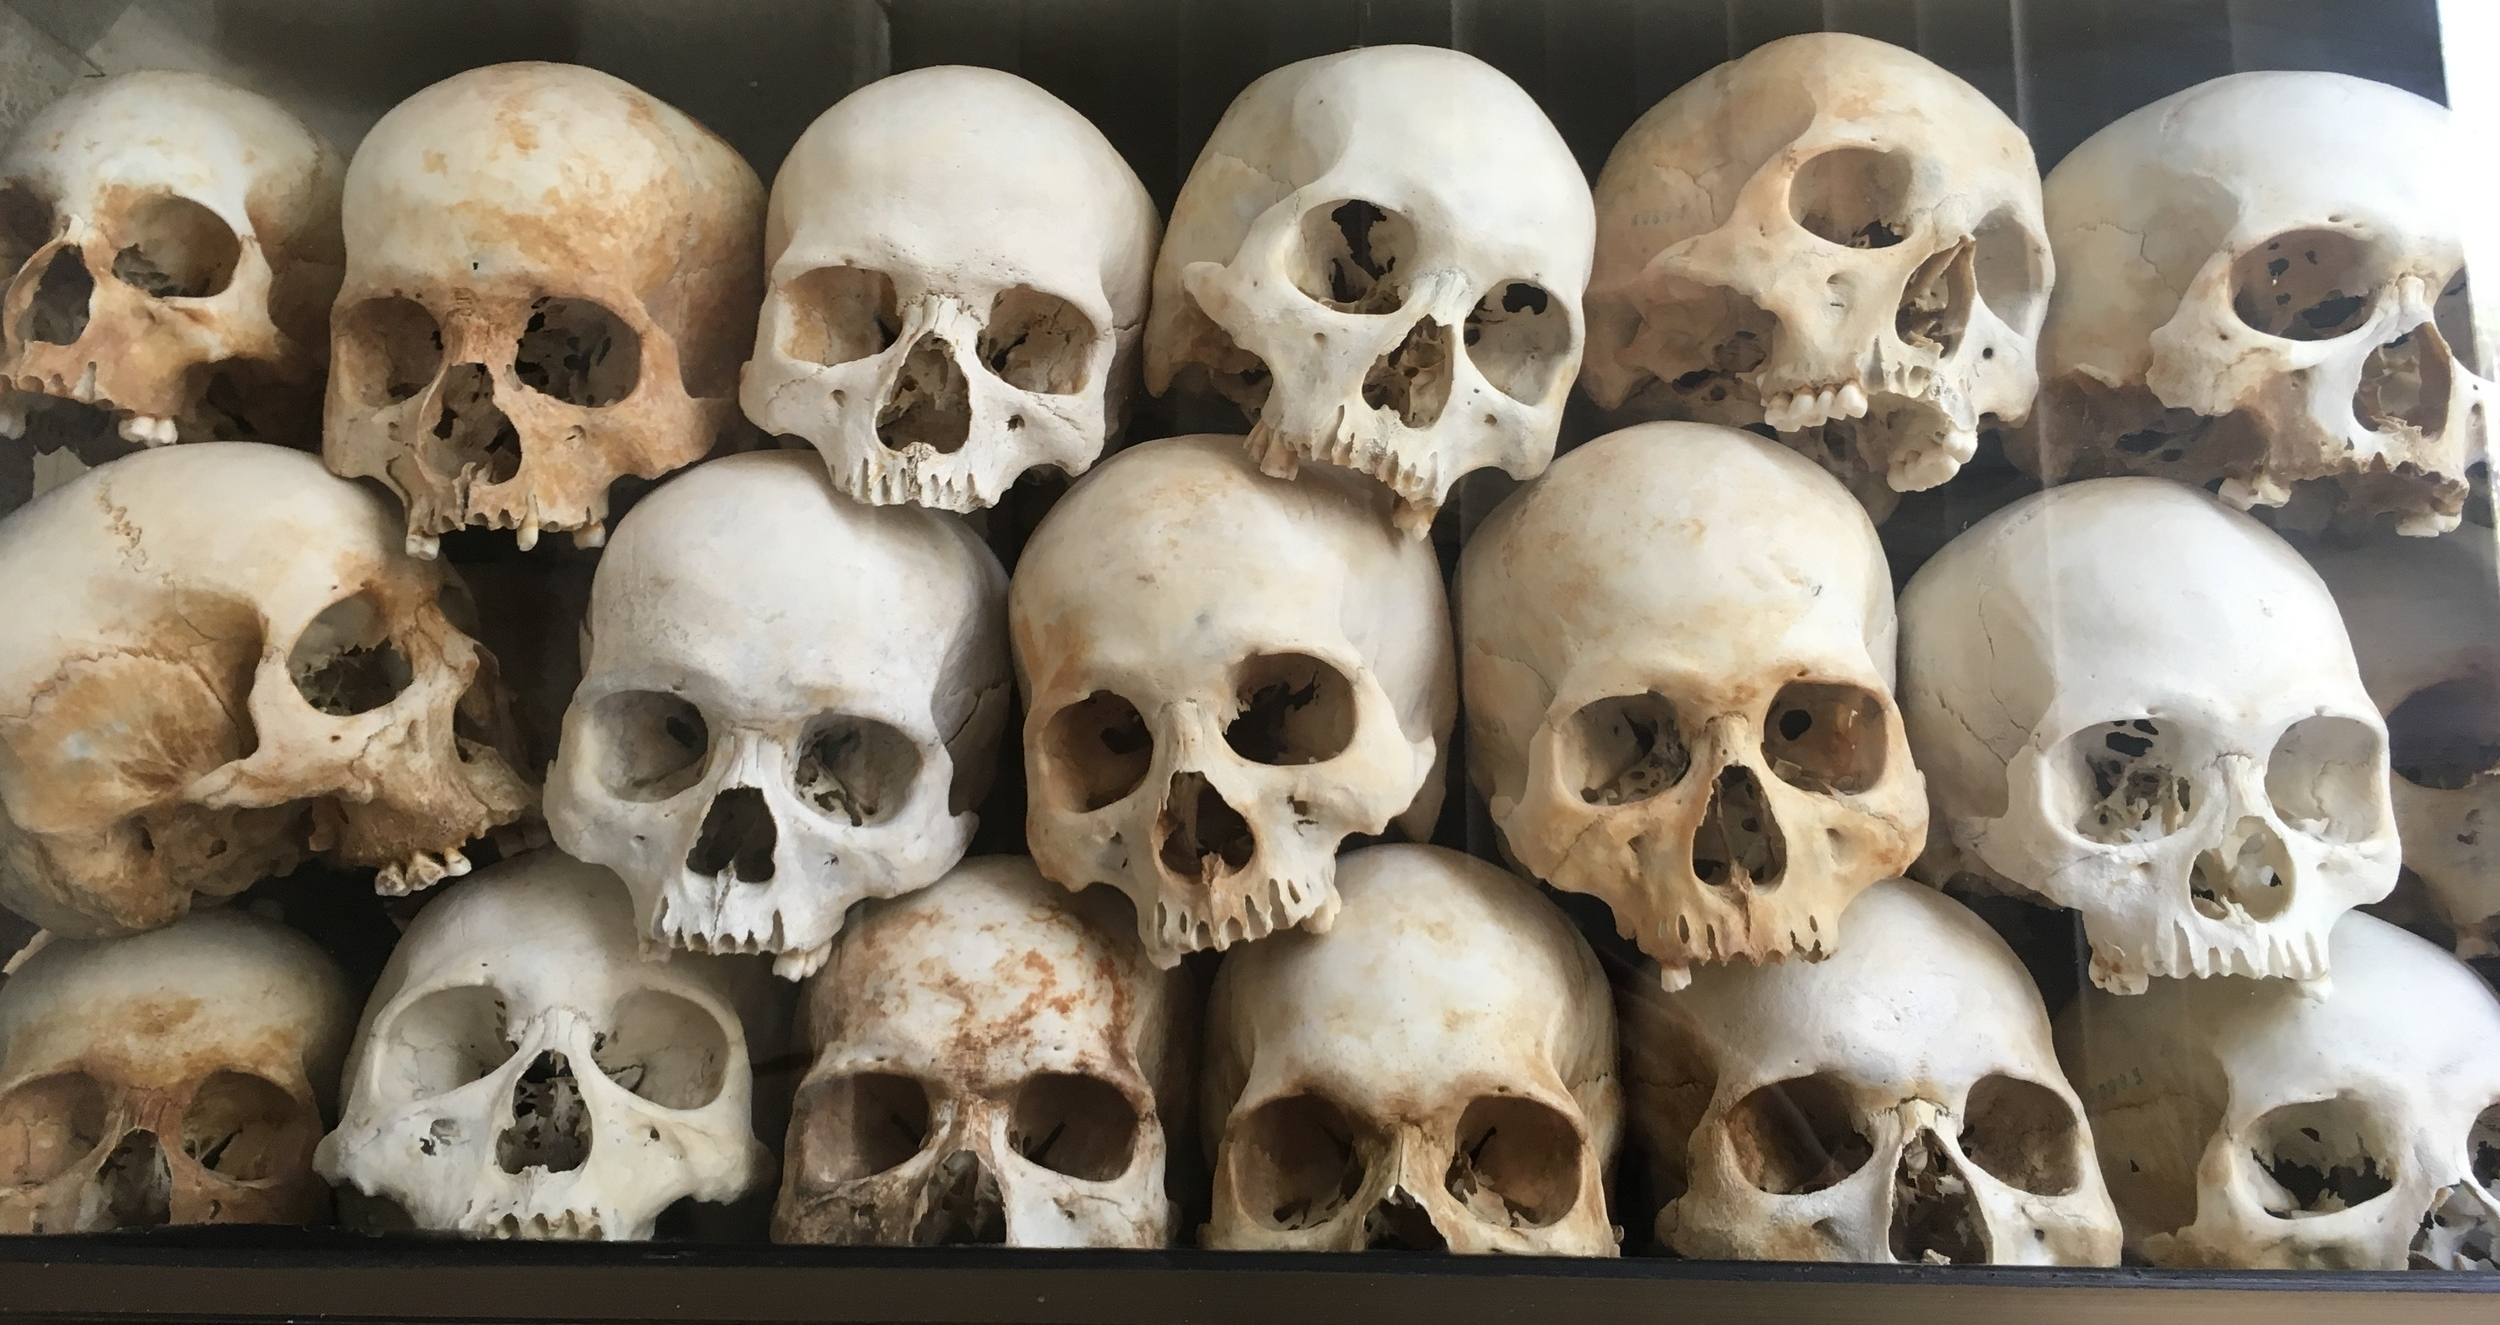 All that is left of so many people following years of horror inflicted by Pol Pot and the Khmer Rouge